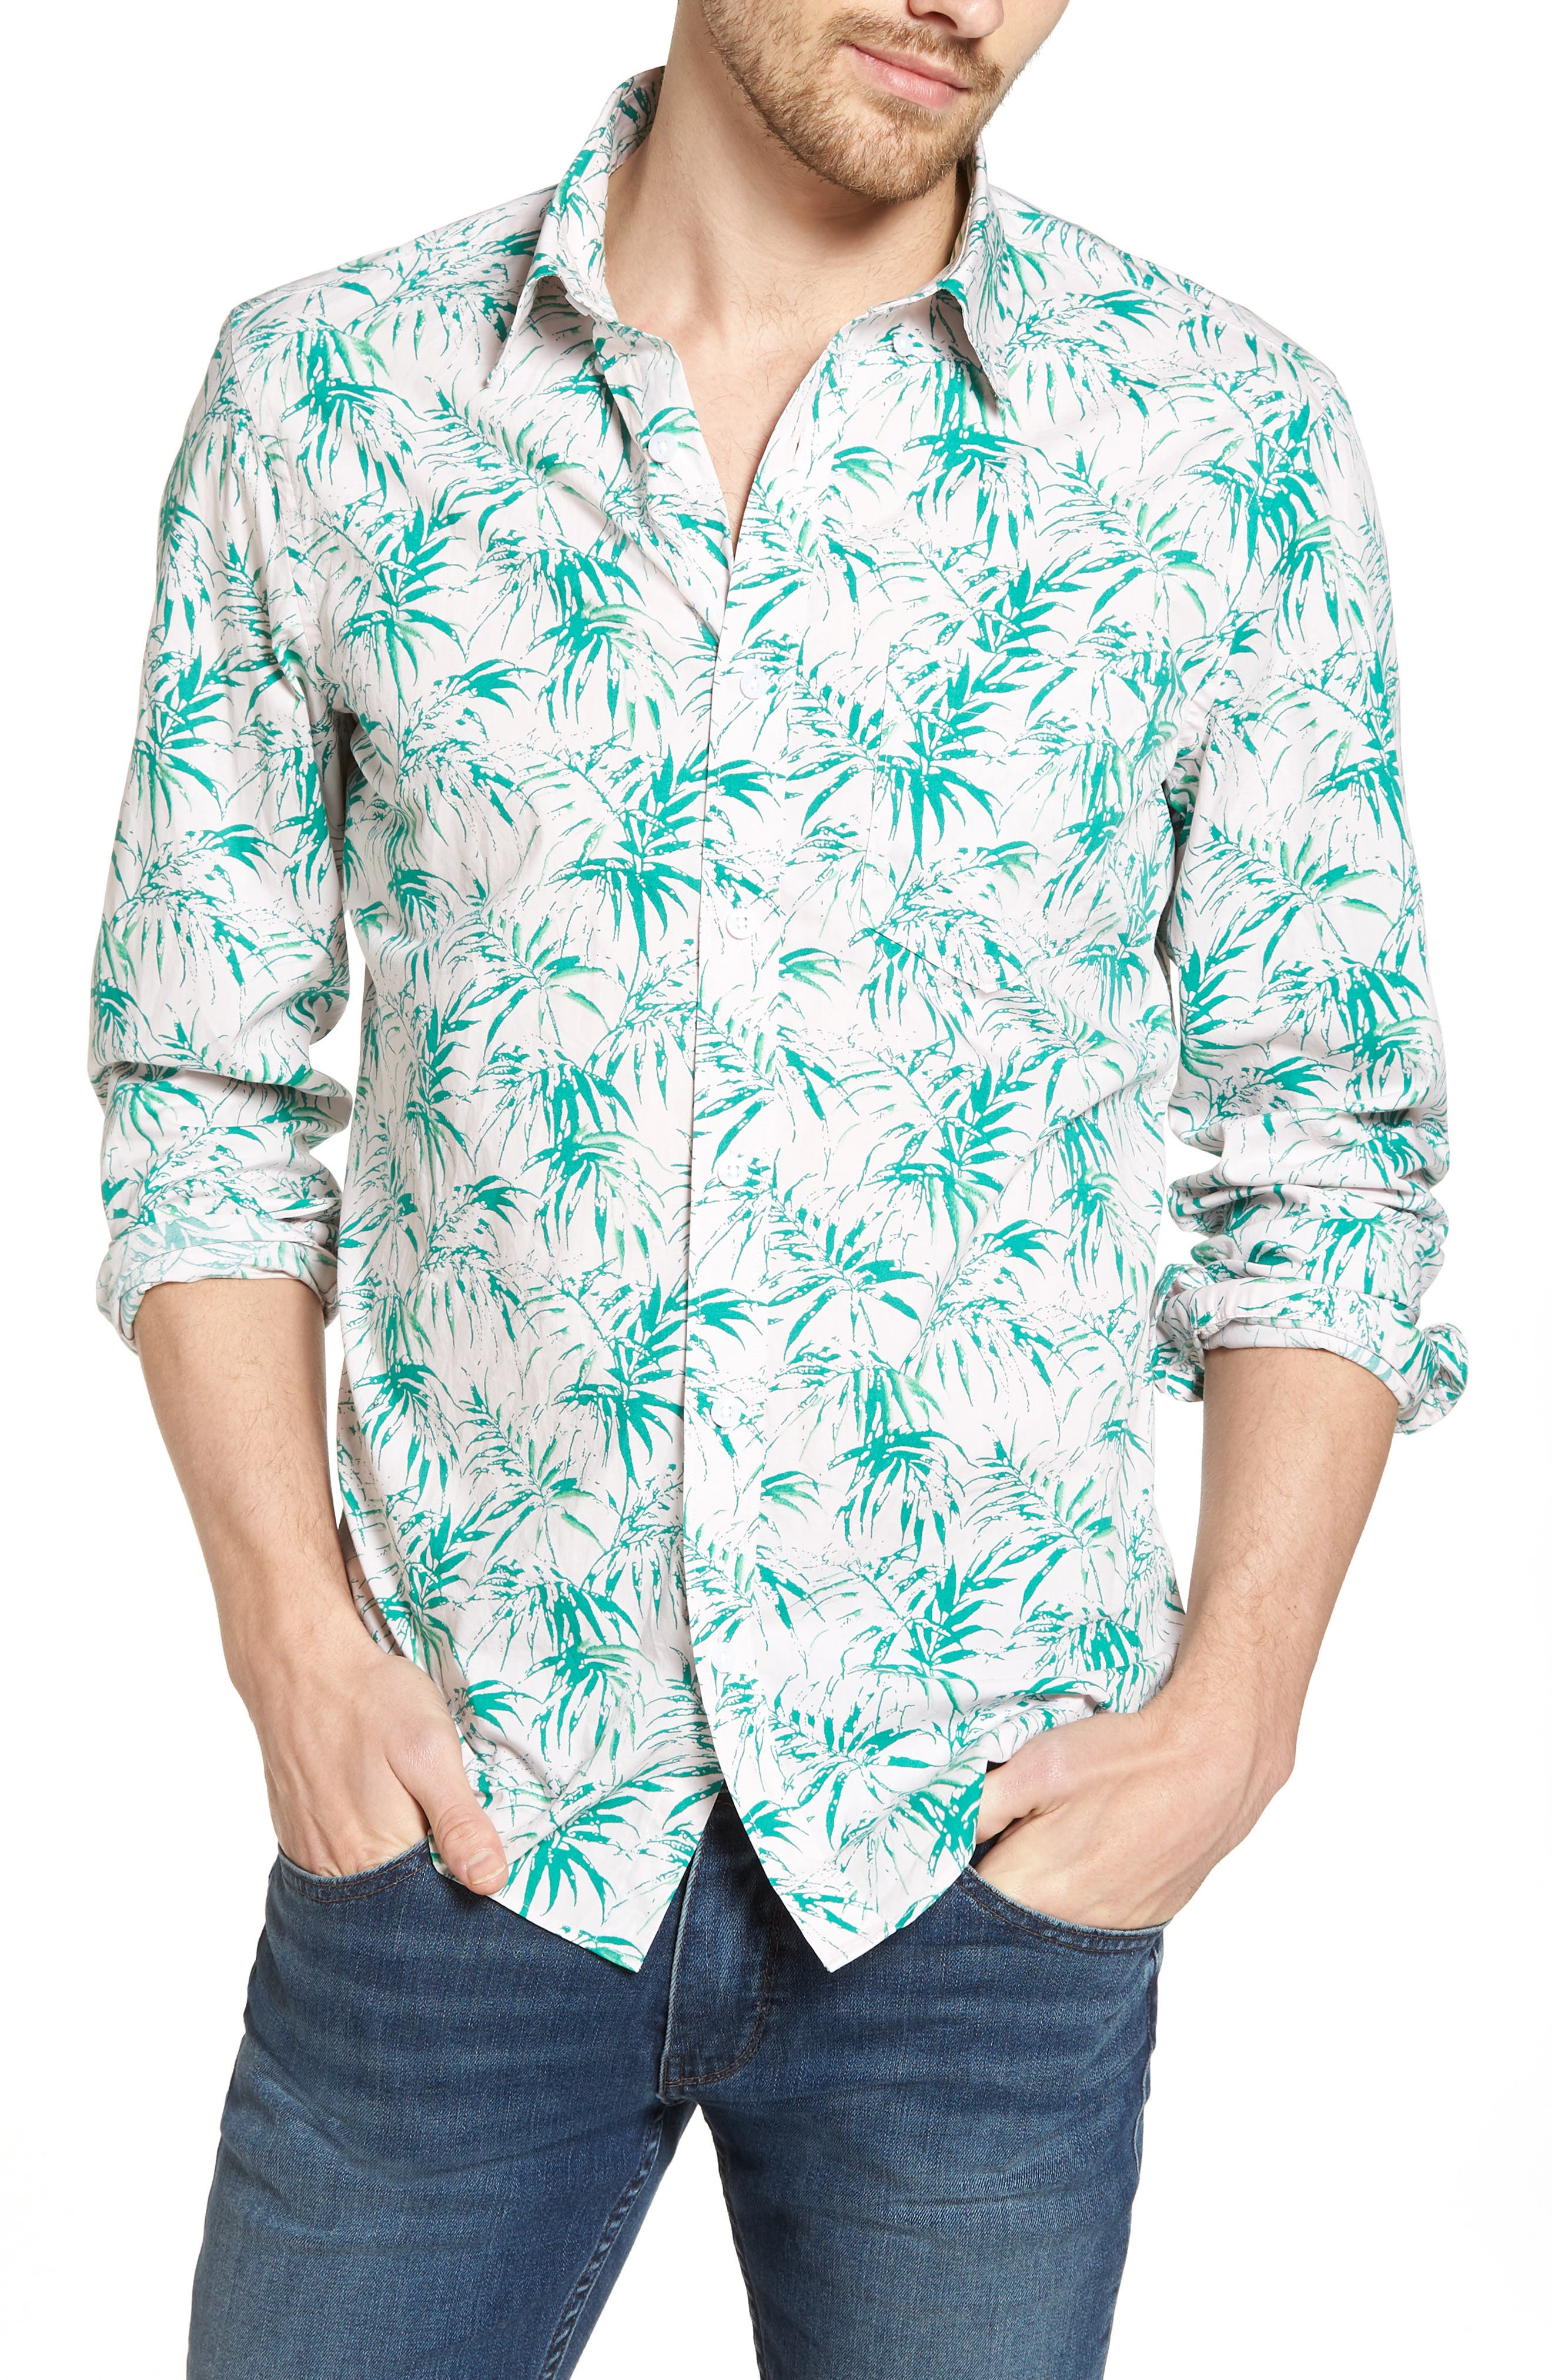 Trim Fit Palm Print Sport Shirt,                             Main thumbnail 1, color,                             Pink Green Stamped Palms